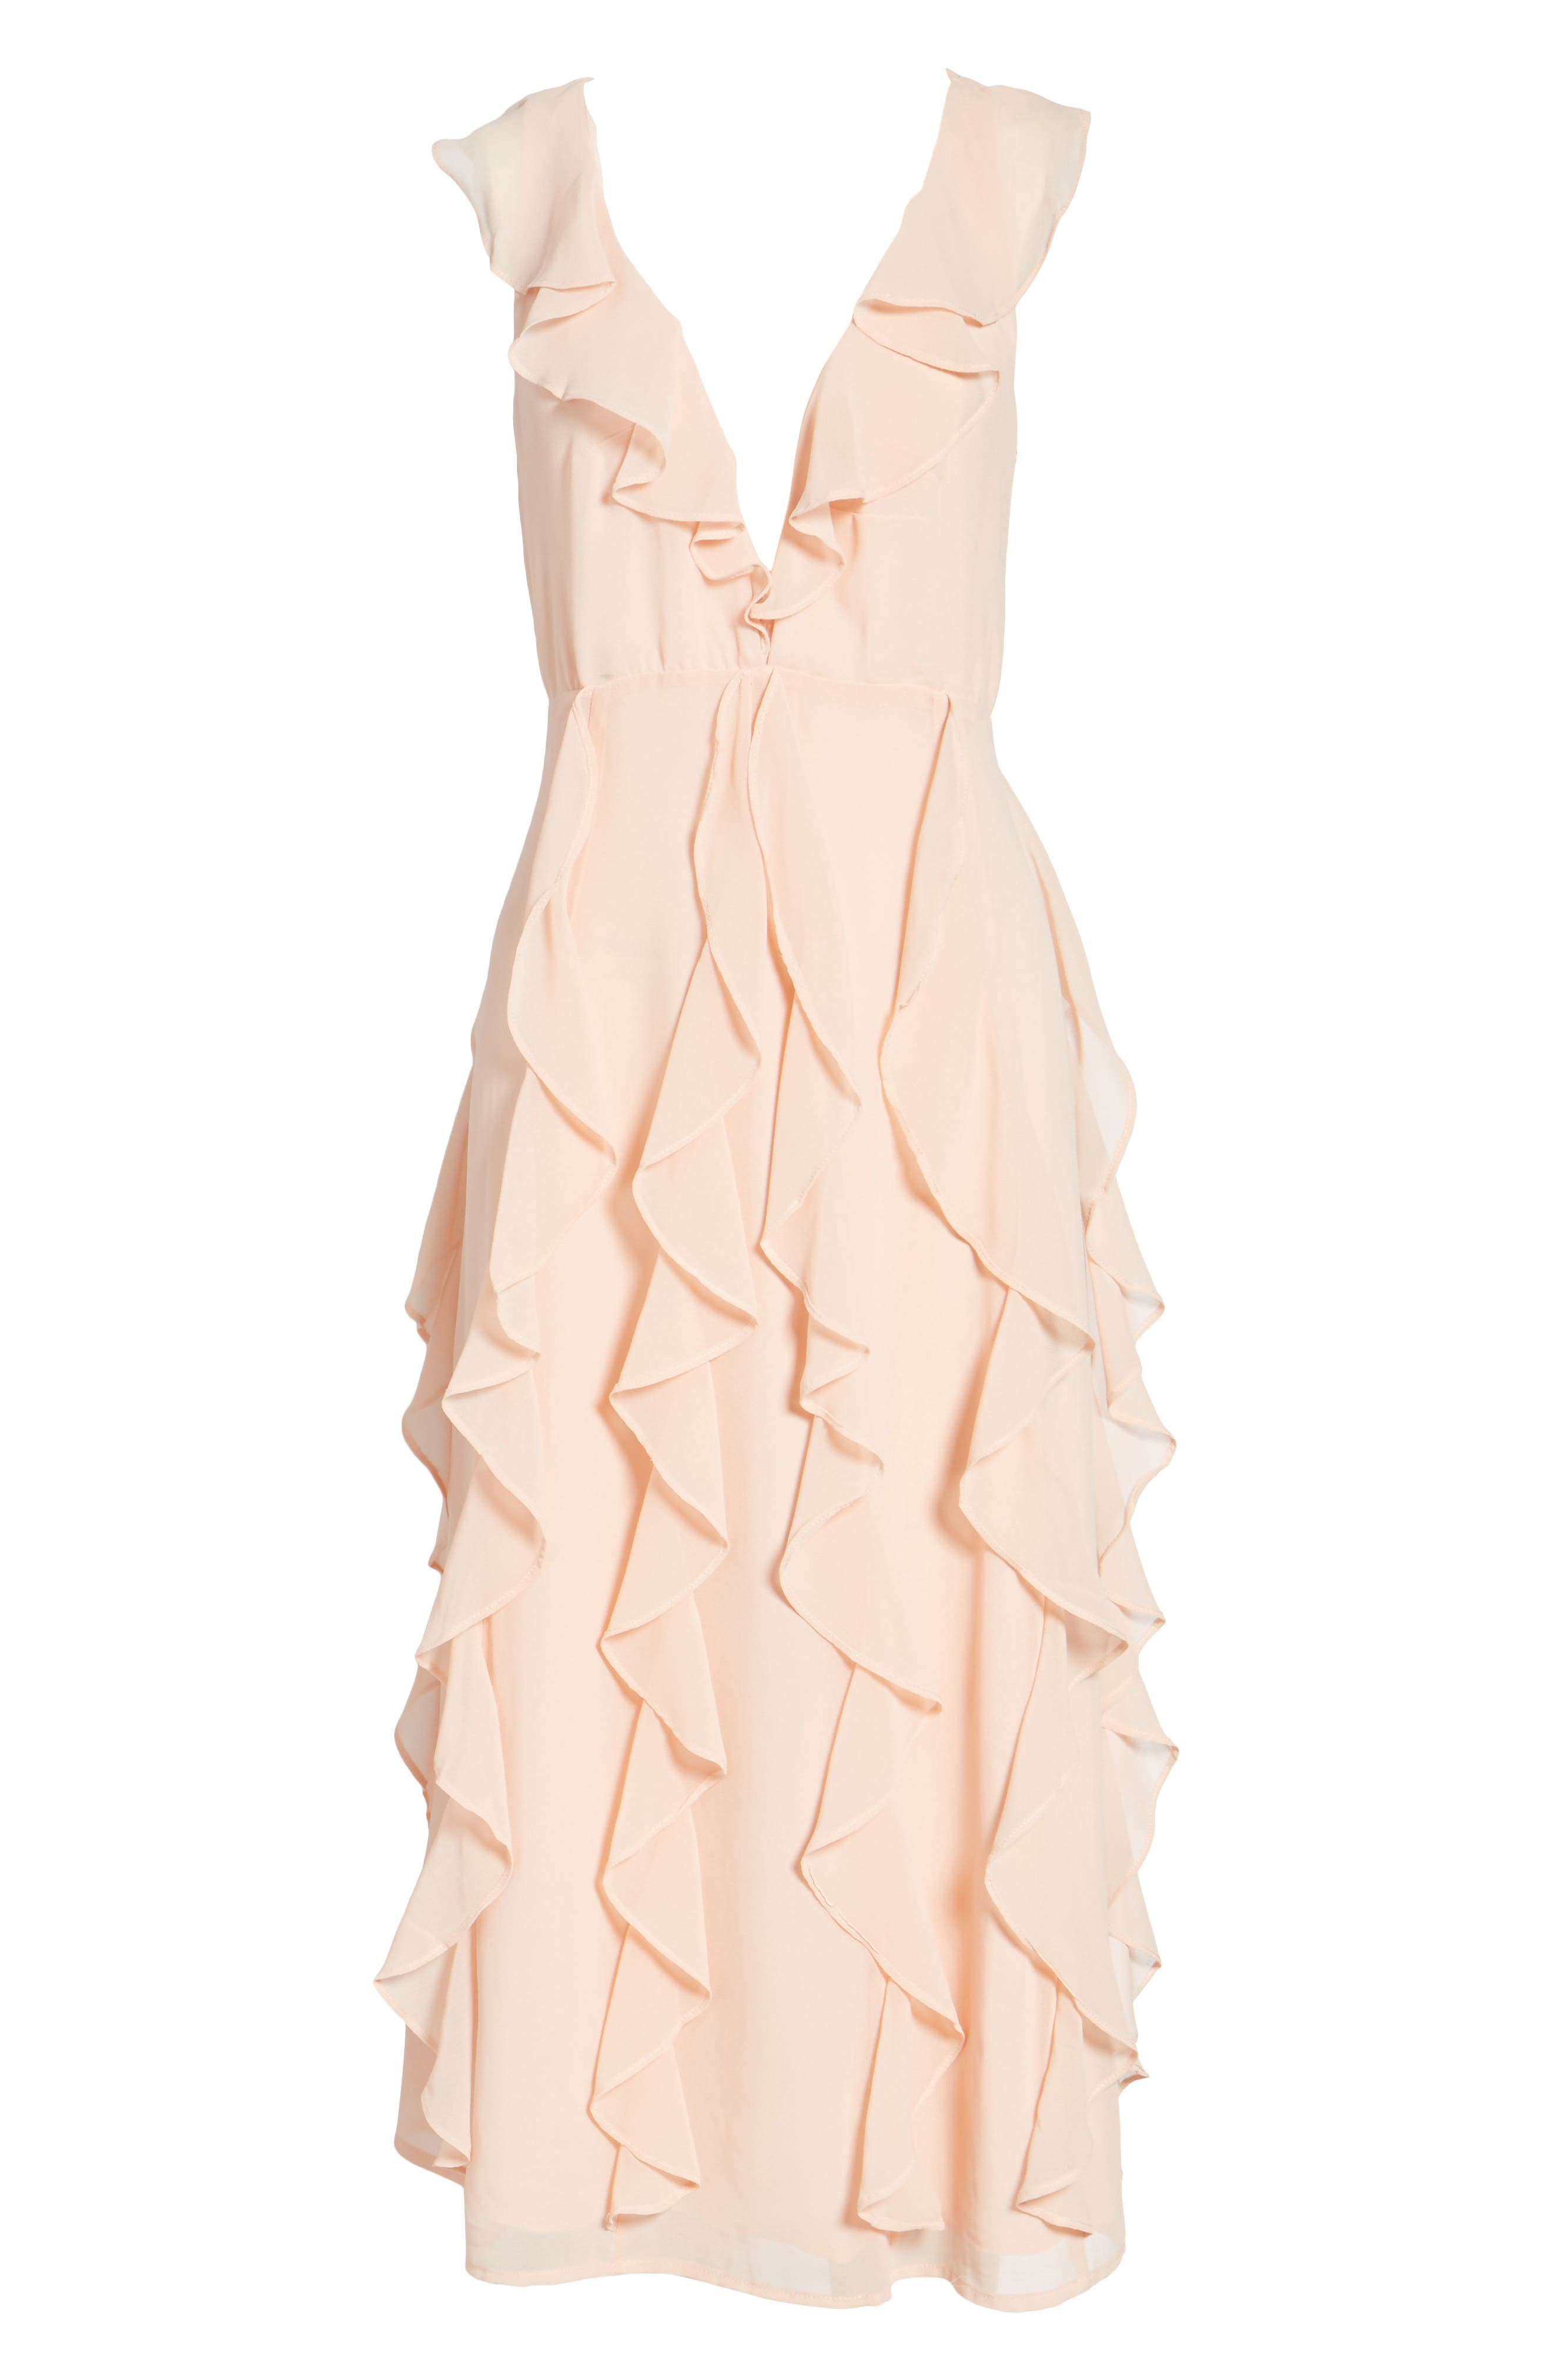 Ingrid Ruffle Chiffon Midi Dress,                             Alternate thumbnail 6, color,                             680